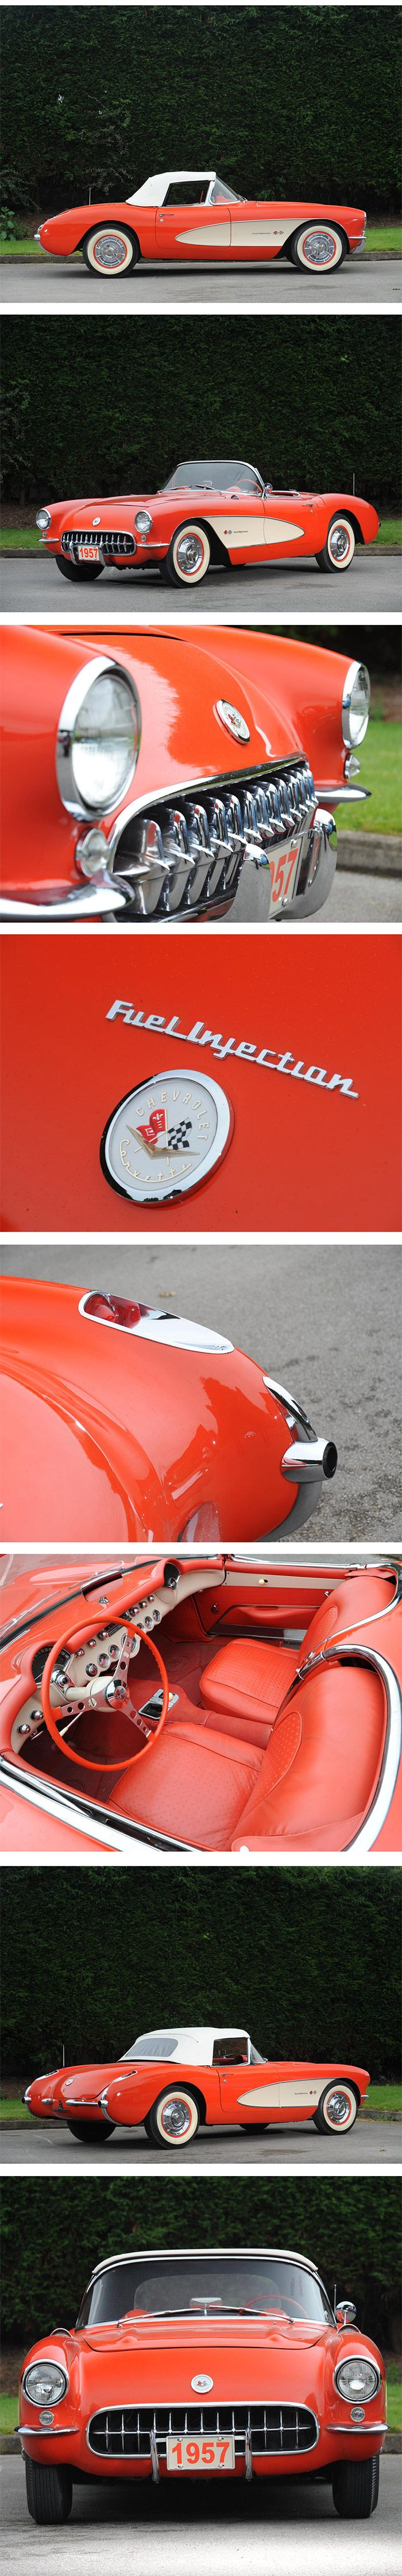 1957 Chevrolet Corvette Roadster BEVERLY HILLS CAR CLUB is always looking to purchase cars. We Buy and Sell All European and American Classic Cars! We Buy Cars in Any Condition! Top Dollar Paid! Finder's Fee Gladly Paid We pick up from anywhere in the U.S.A! Please call Alex Manos : 310-975-0272